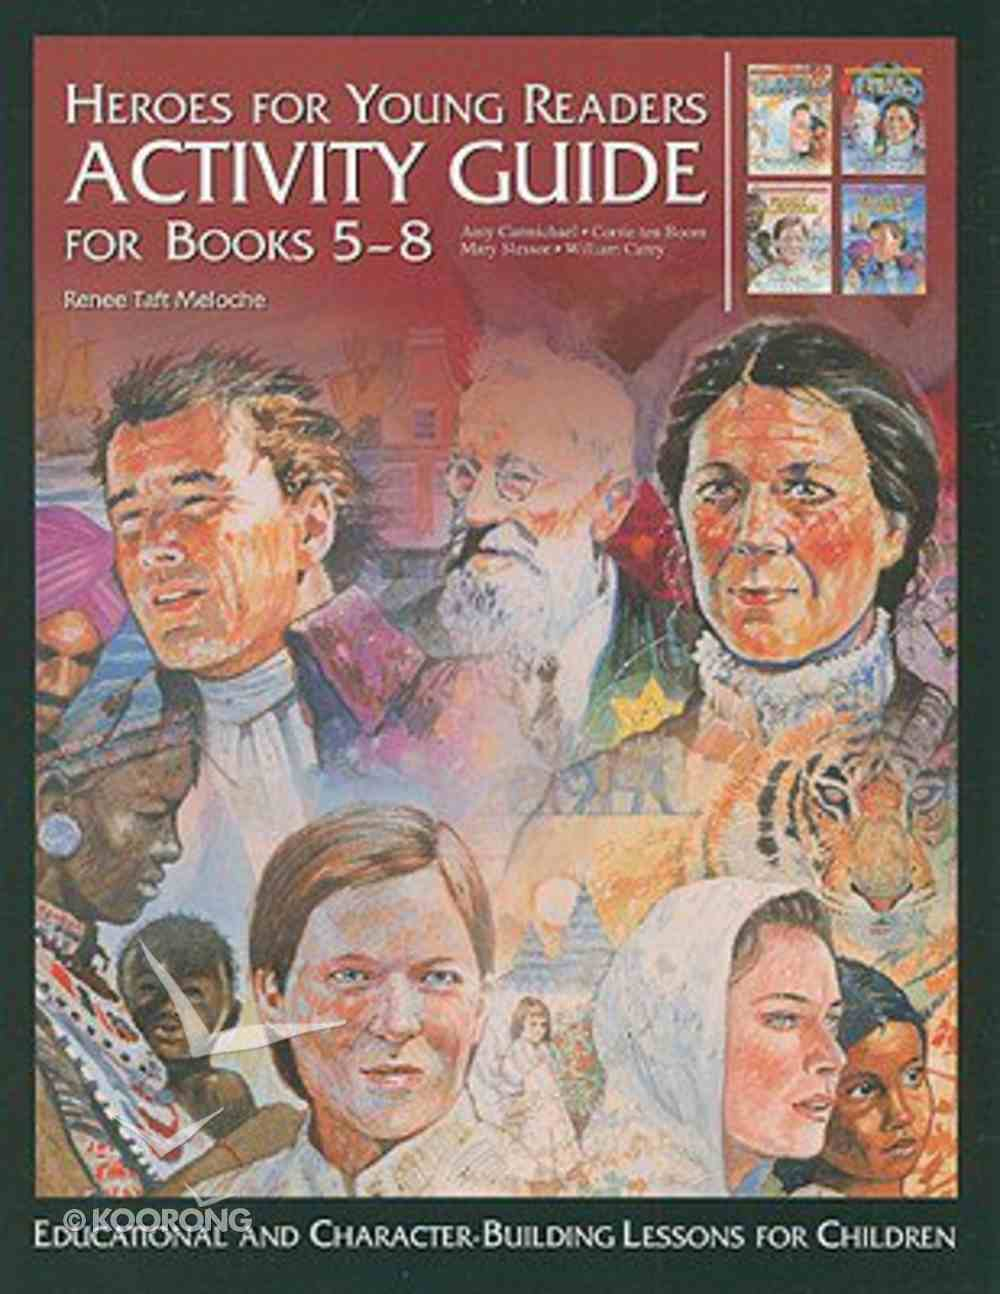 Activity Guide Books 5-8 (Heroes For Young Readers Series) Hardback